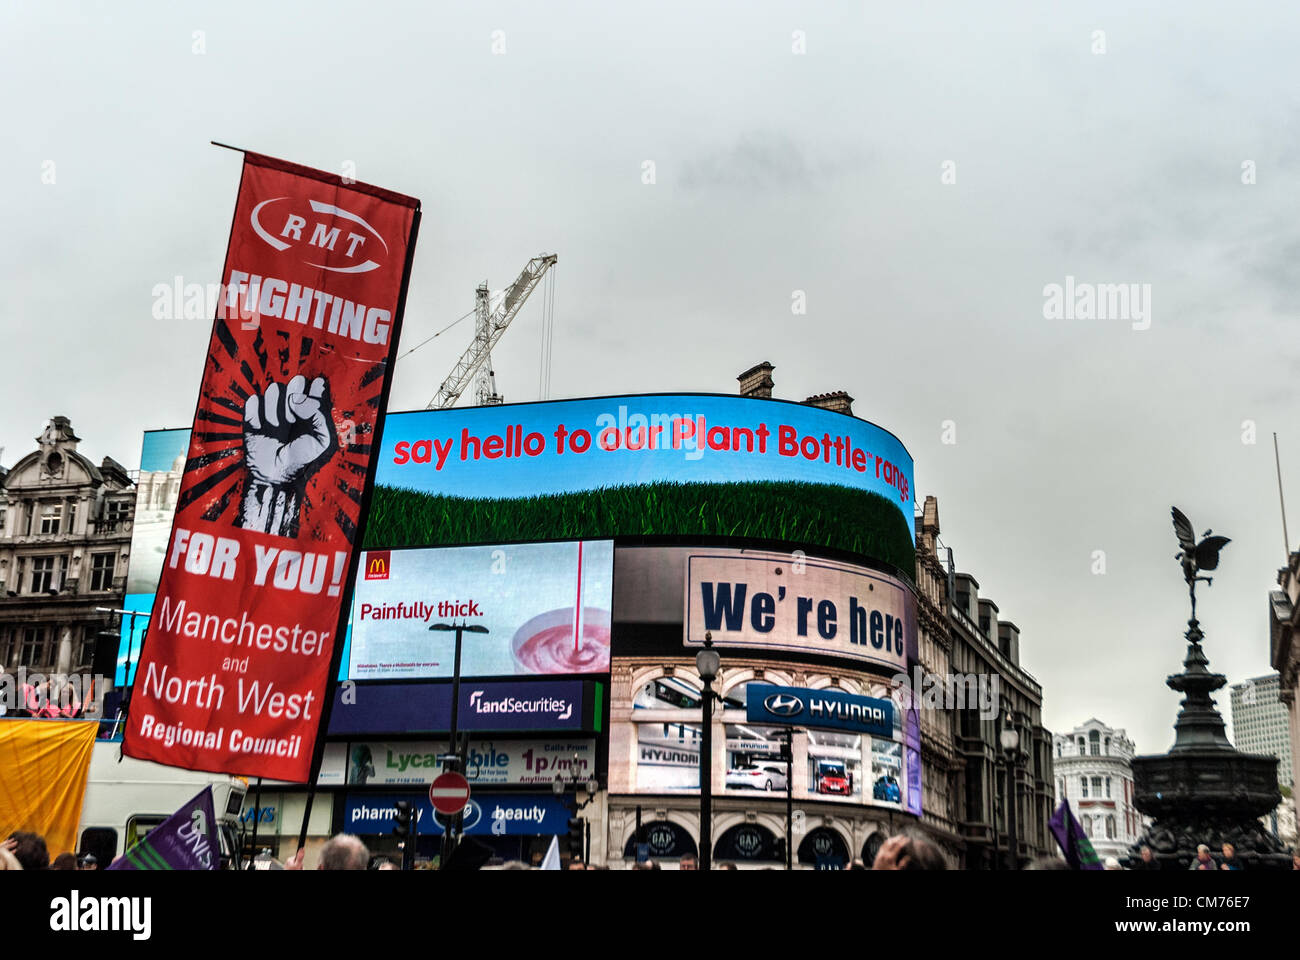 London, UK. 20th October 2012. Thousands of people have marched and said no to austerity in the protest against - Stock Image